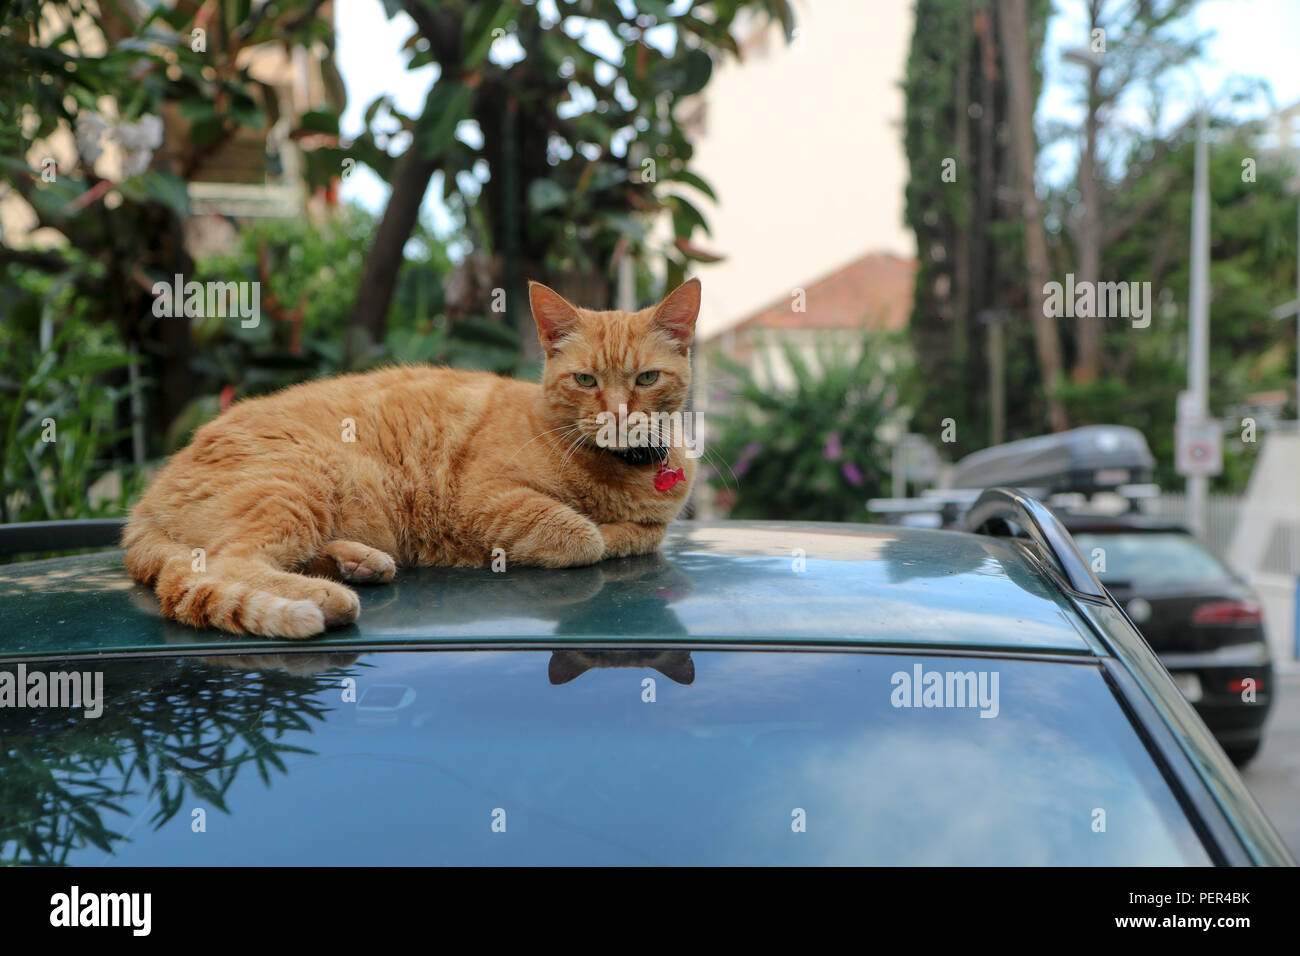 A picture of a cat lying on the street on the car´s roof. - Stock Image